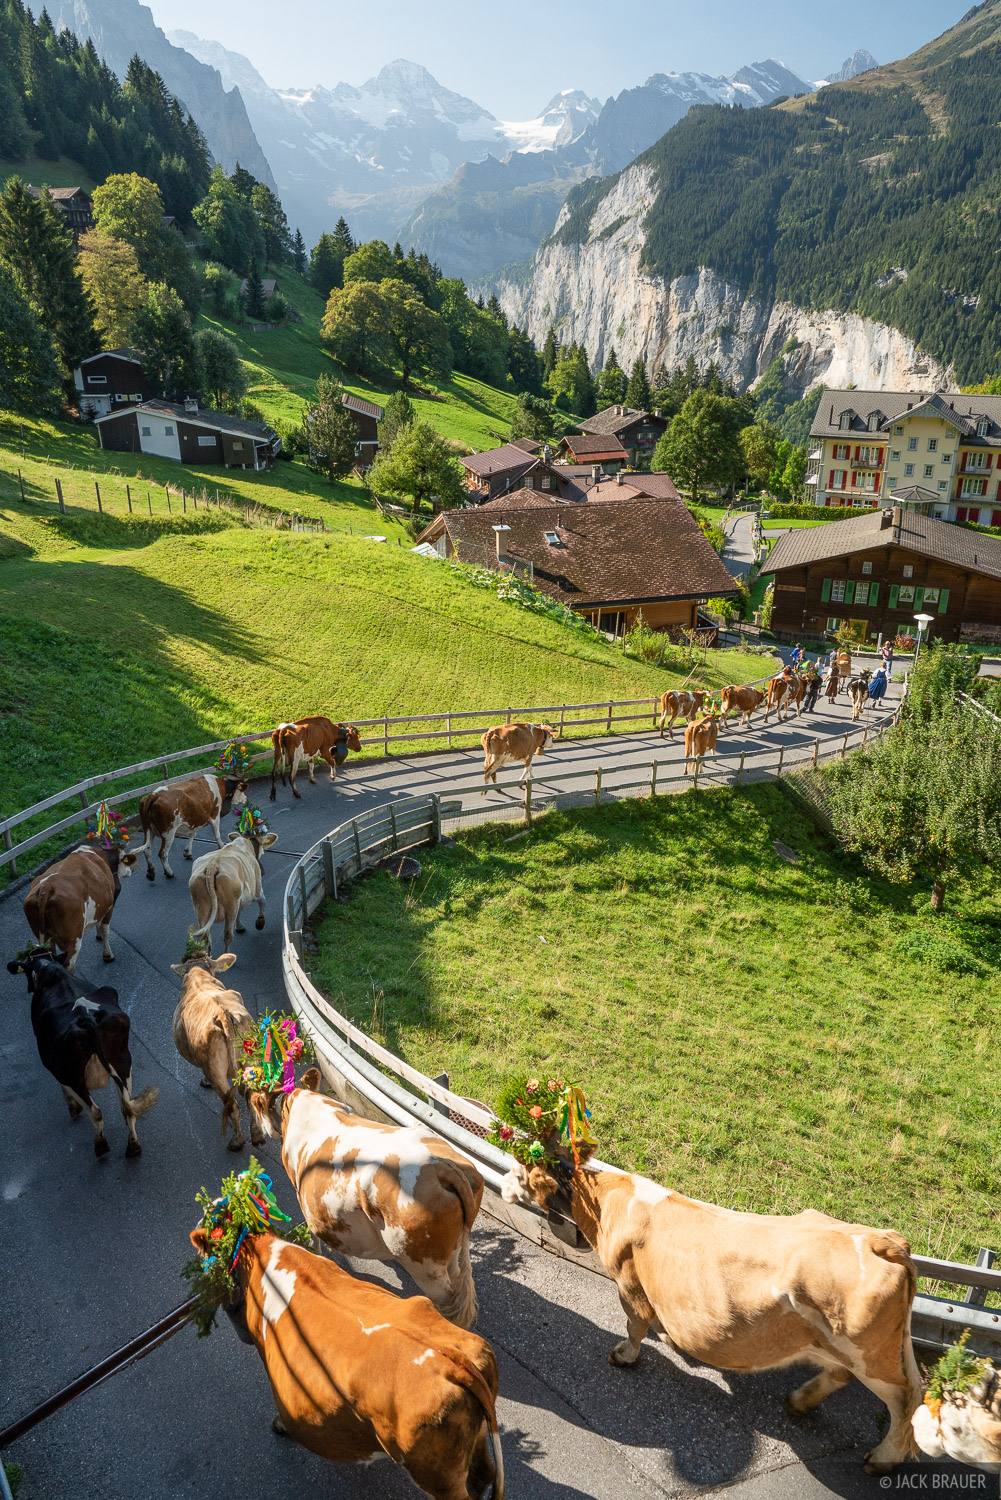 Bernese Alps, Lauterbrunnental, Switzerland, Wengen, cows, Bernese Oberland, Alps, photo